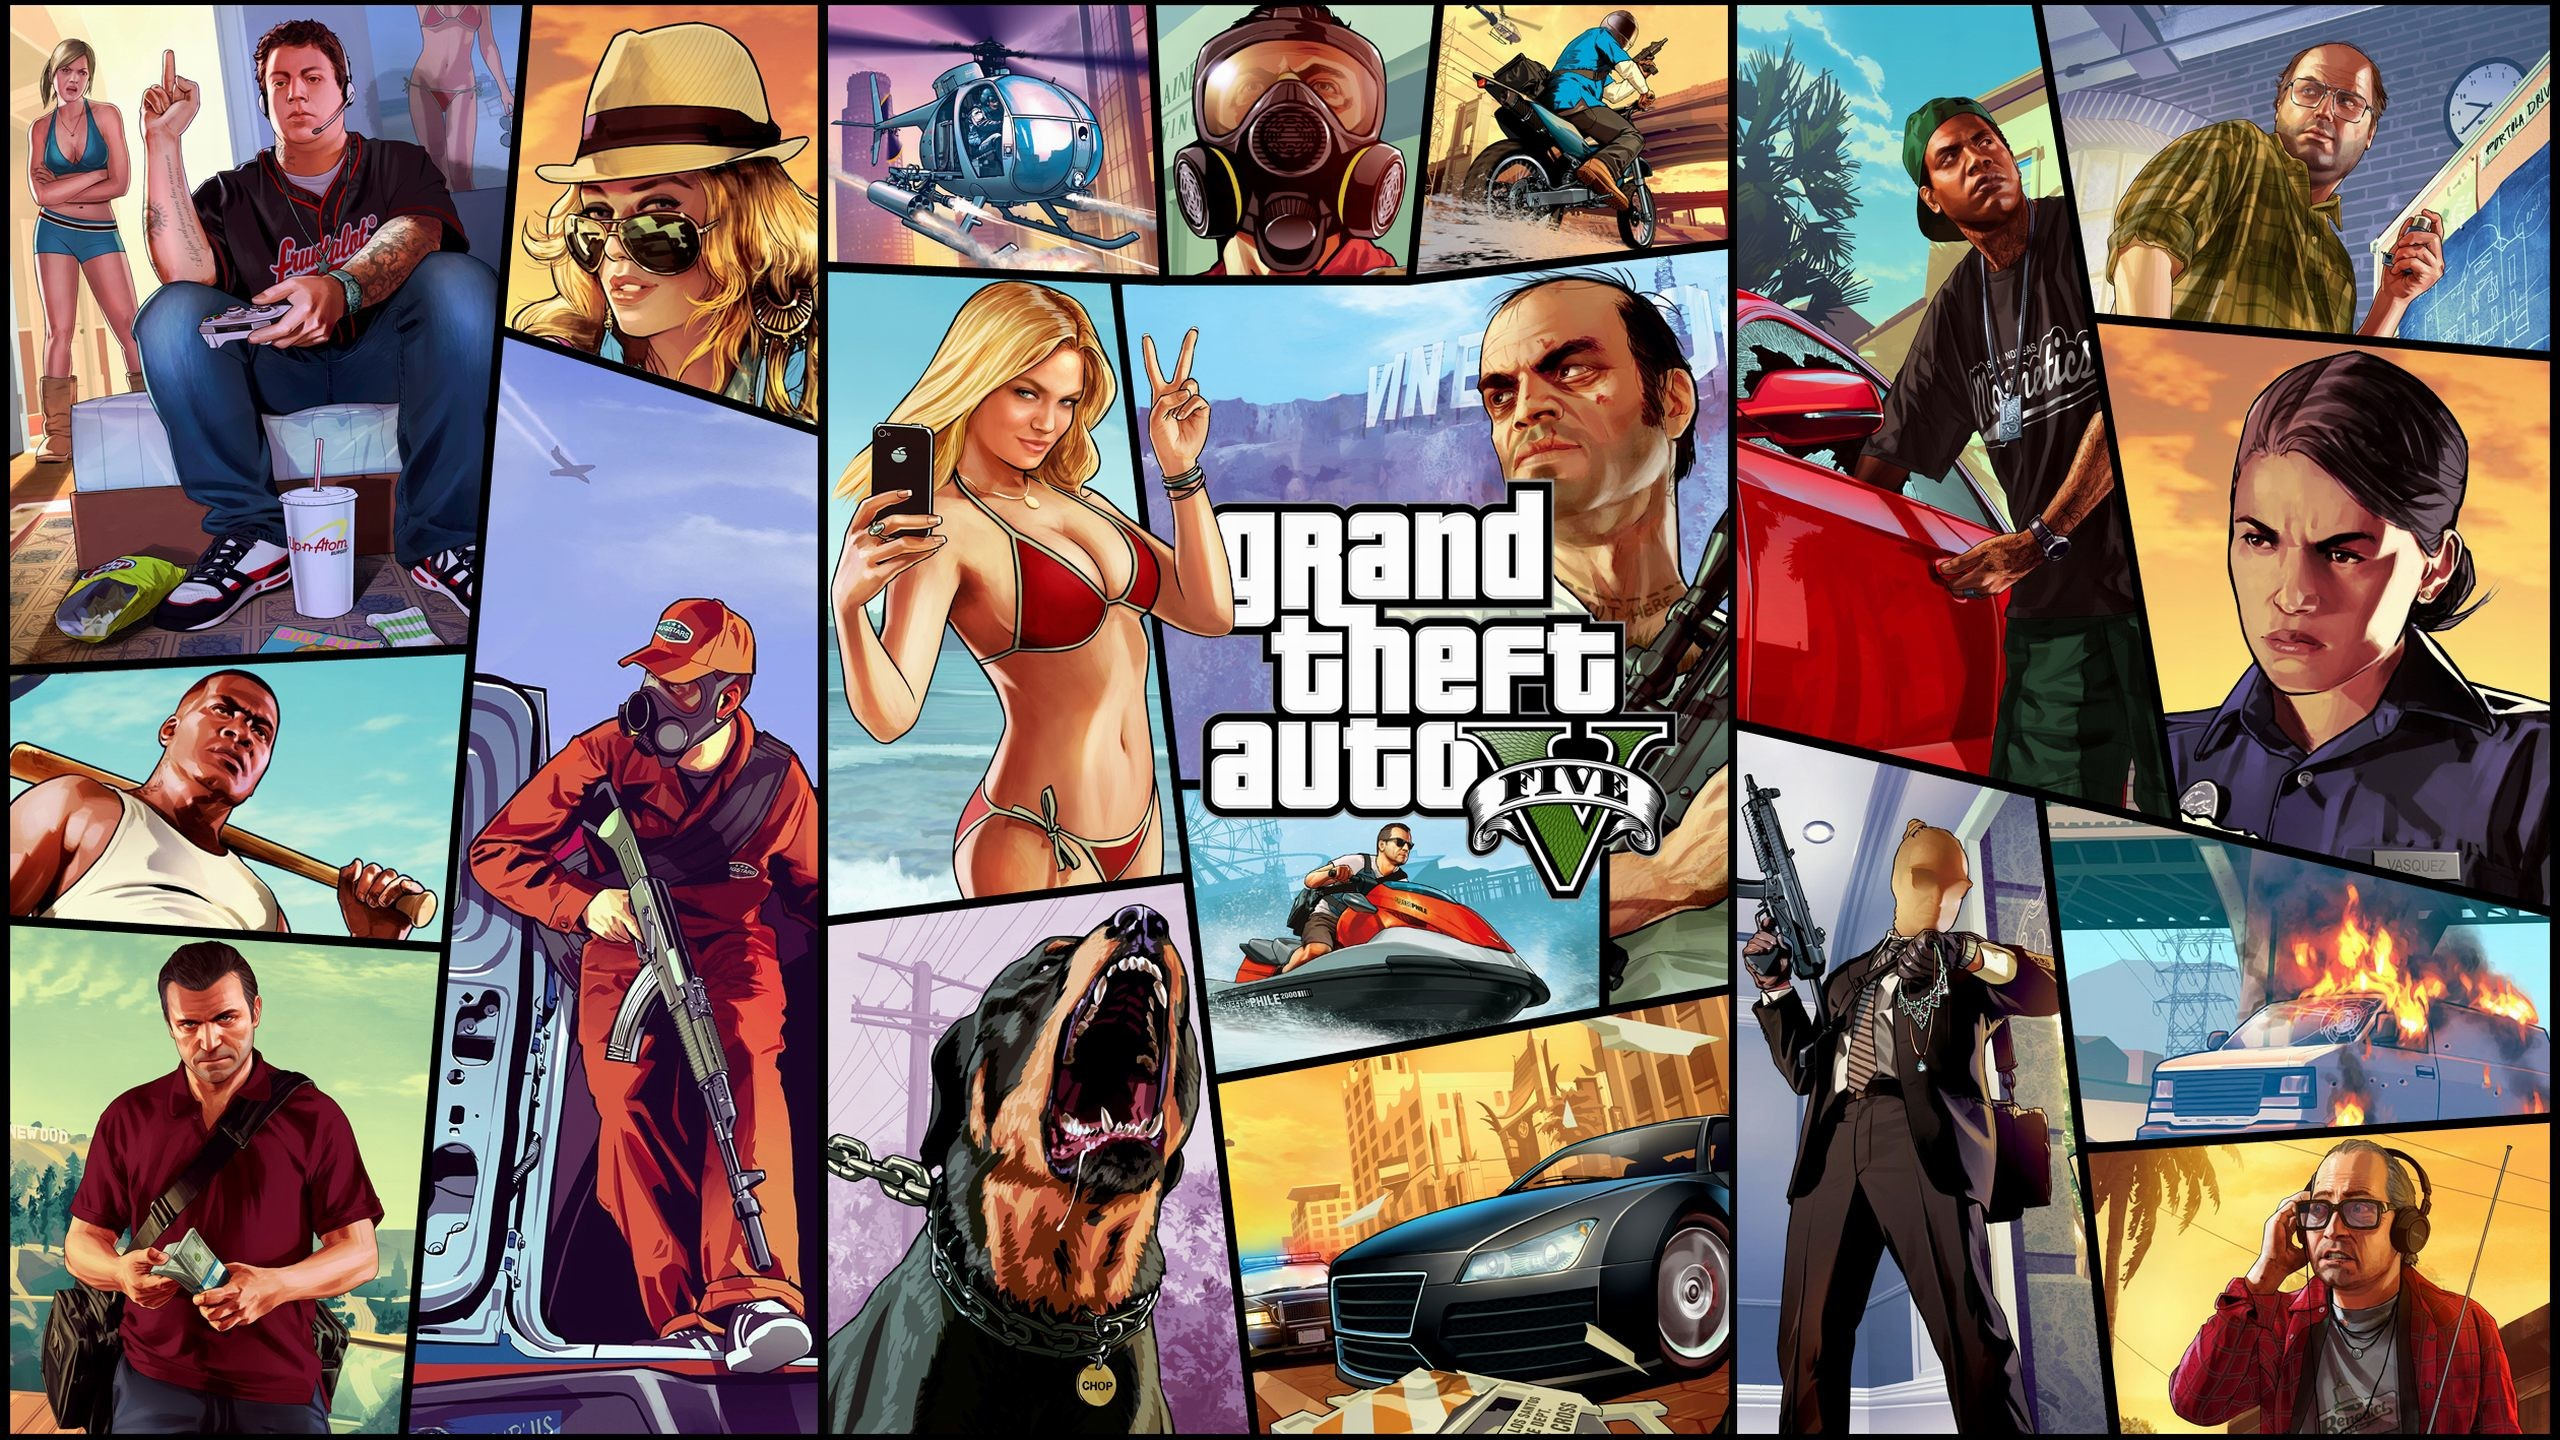 … grand theft auto wallpaper wallpapers browse …